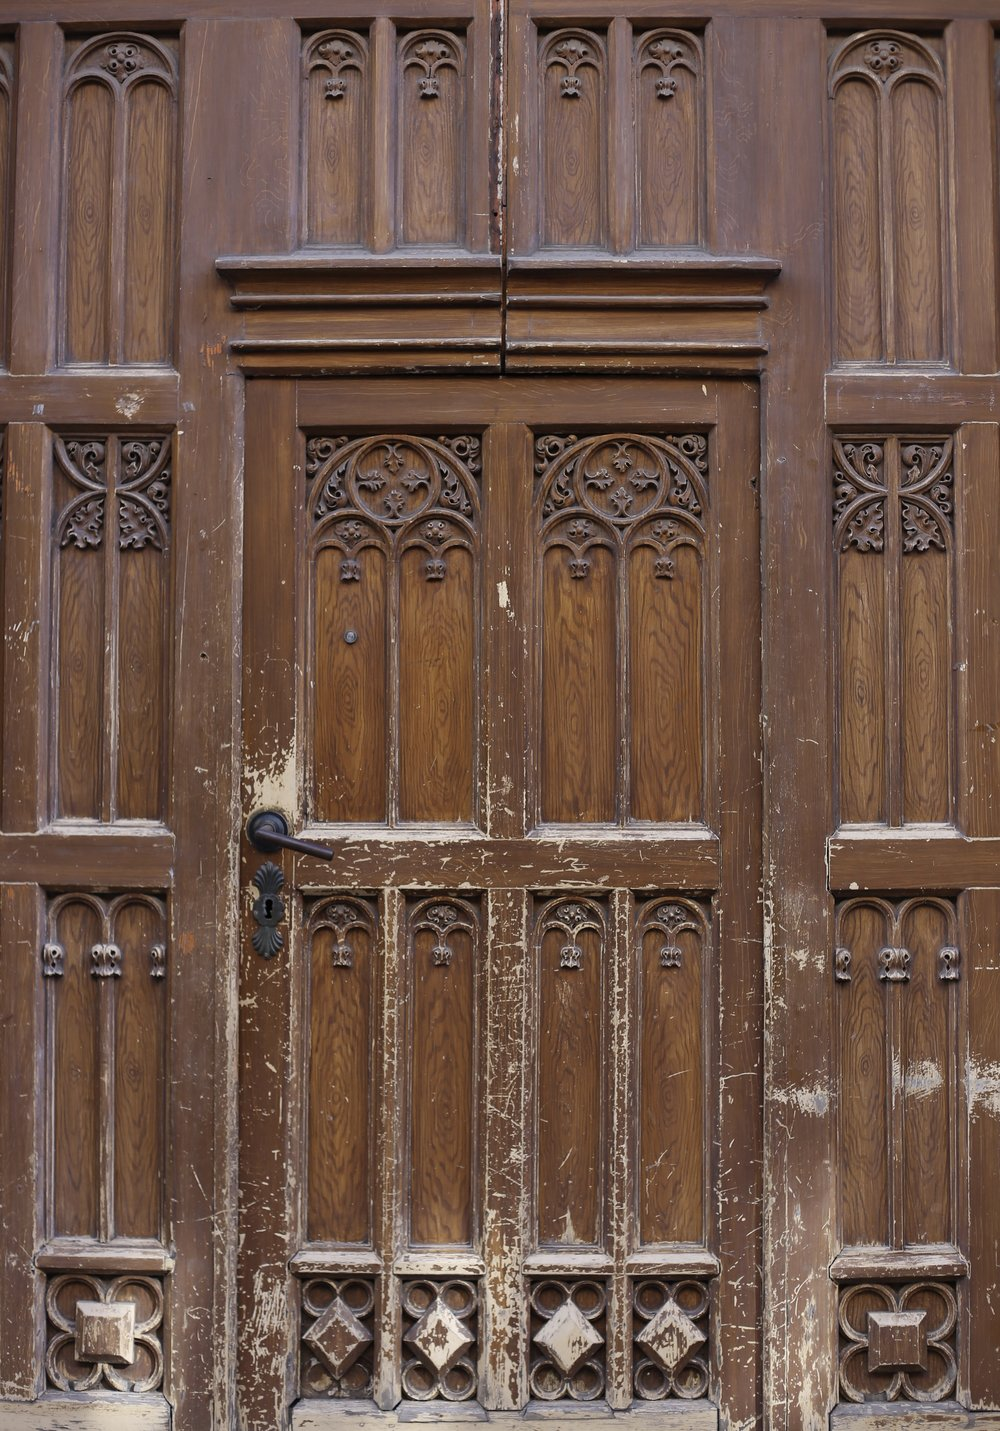 A battered wooden door with delicate detailing and carvings.